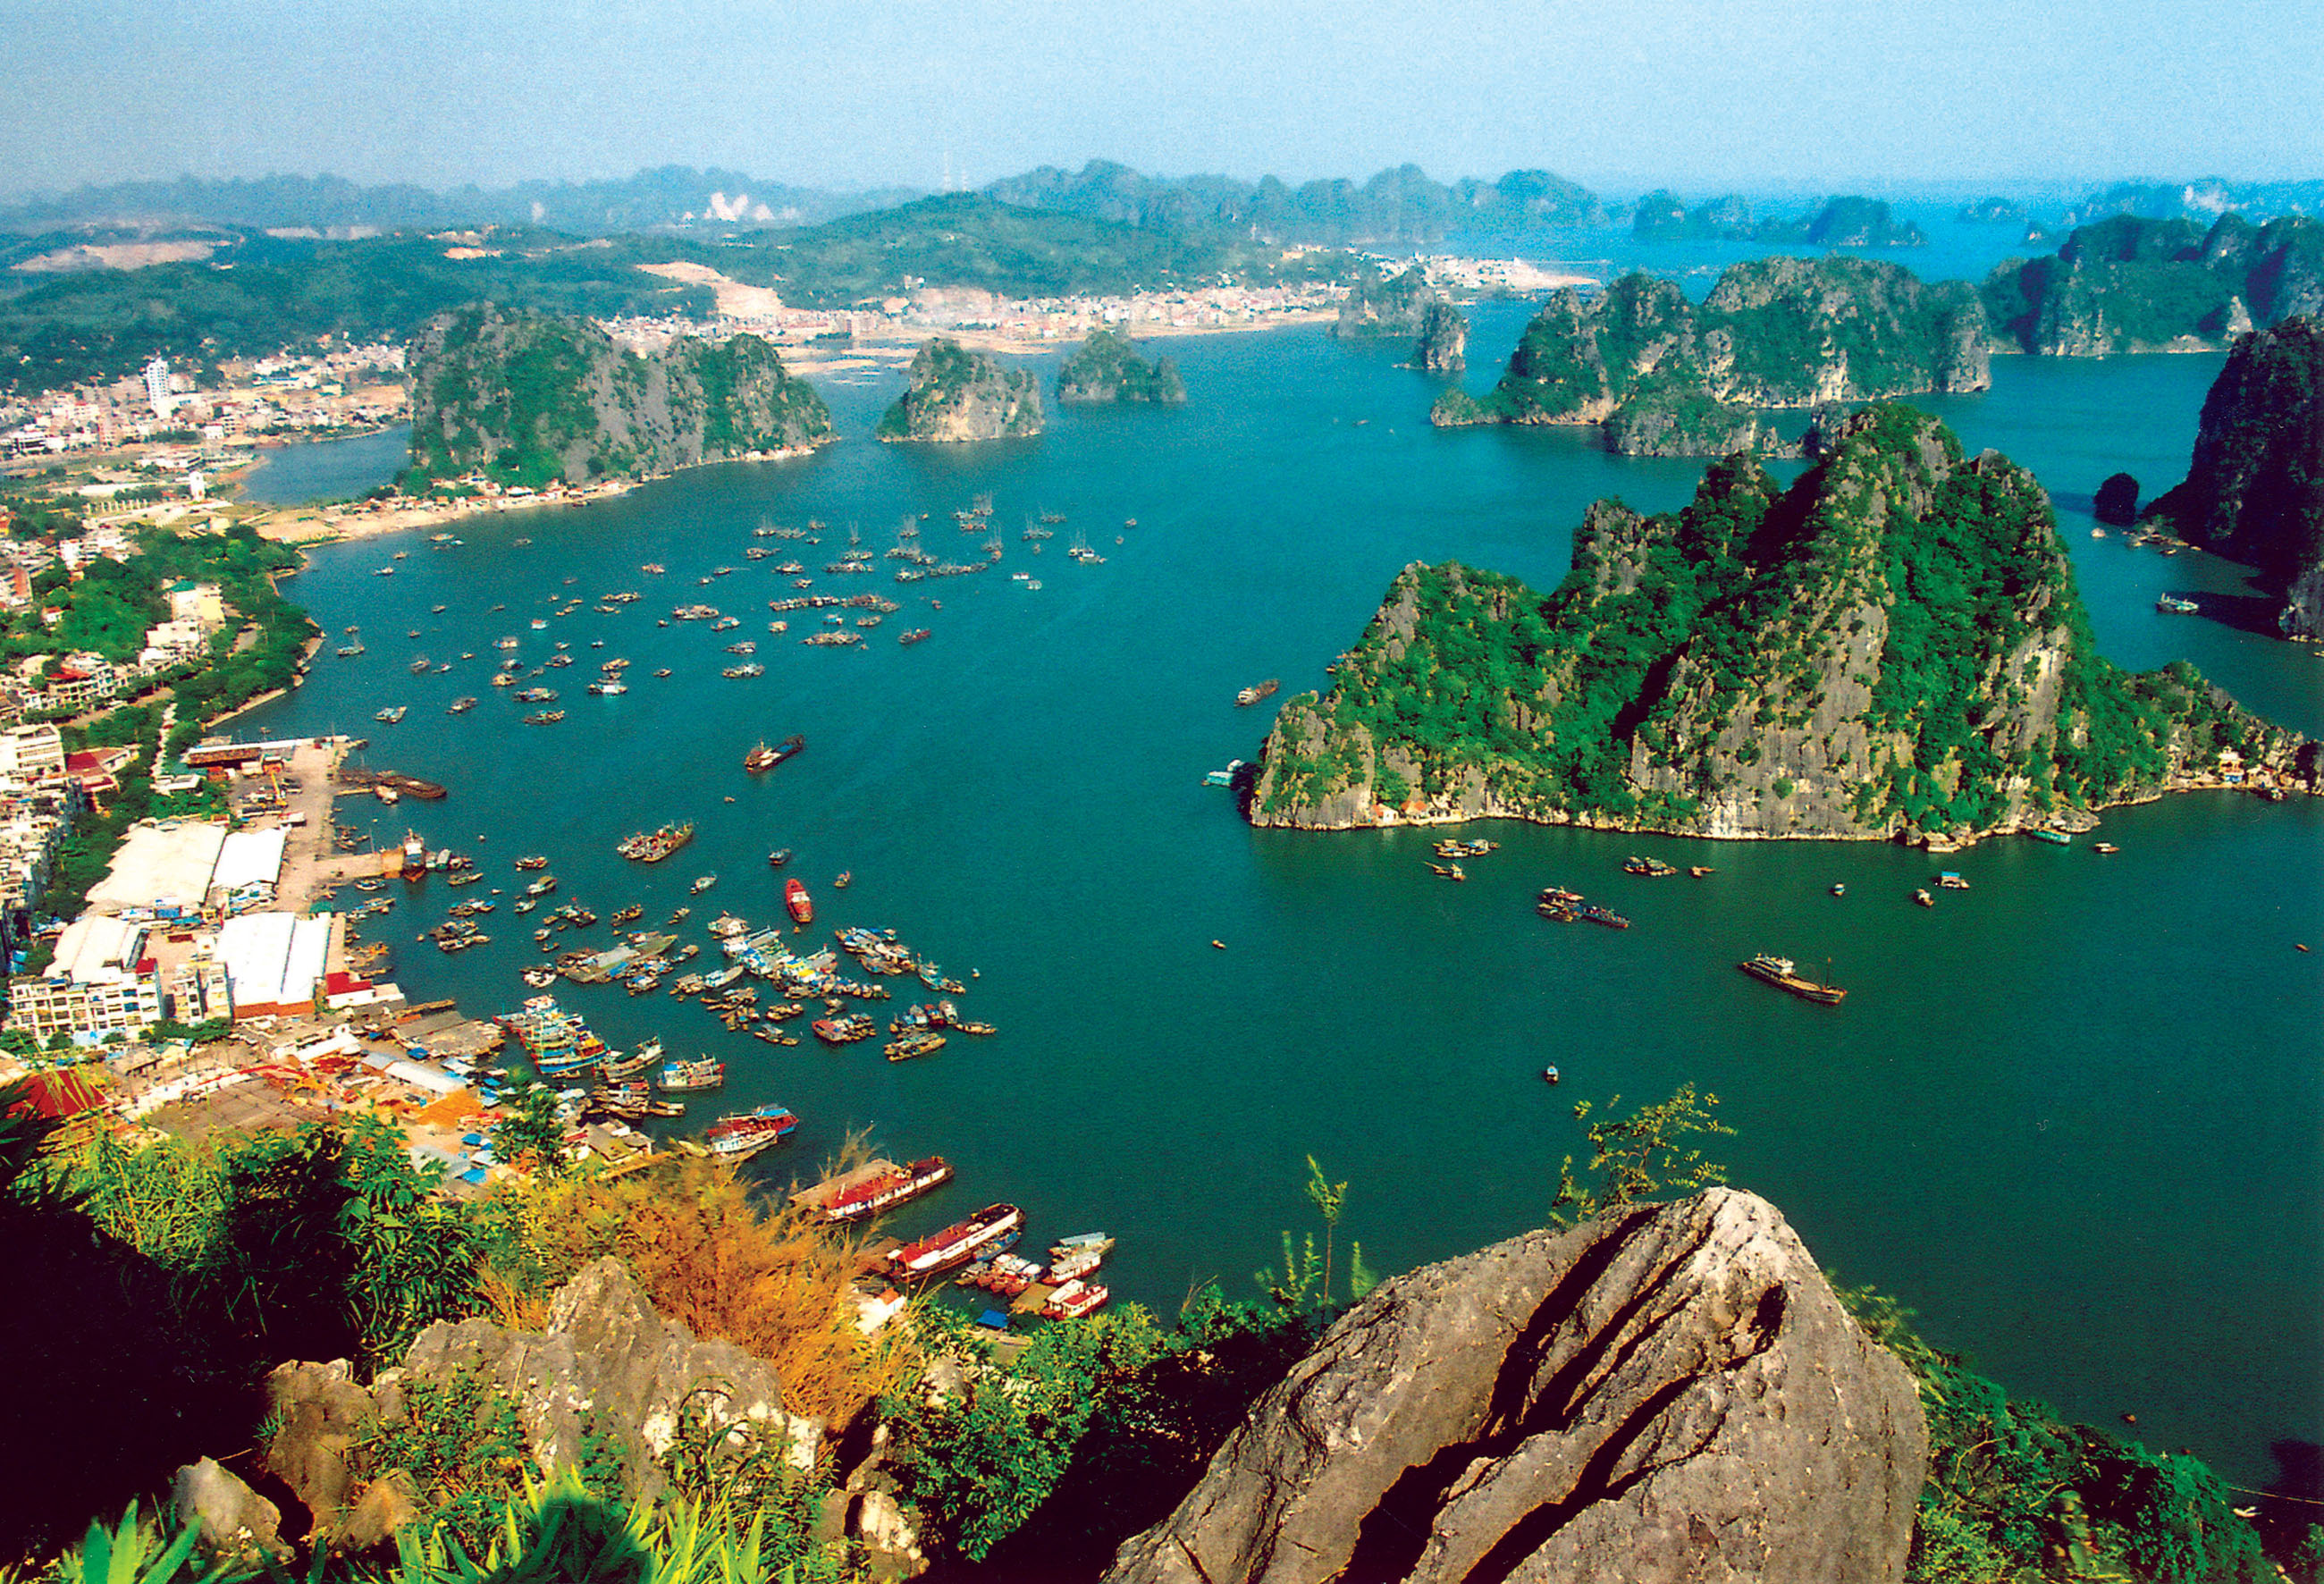 Day 3: Hanoi - Ha Long bay – Overnight on Junk (B/L/D) – included escort tour guide and private transfer from/to Hanoi